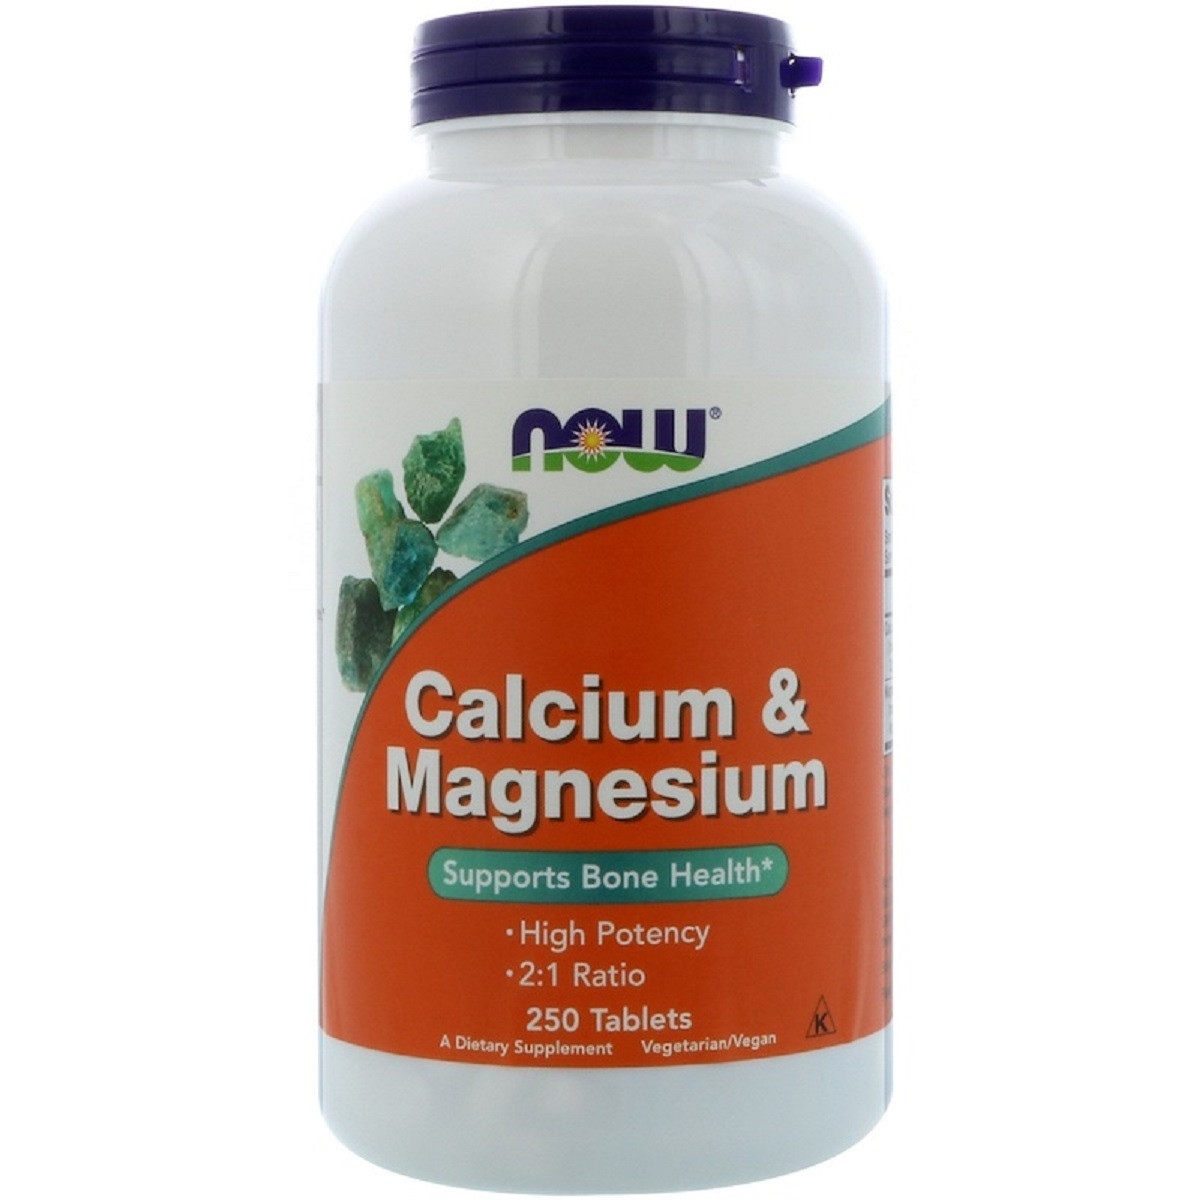 Кальций и Магний, Calcium & Magnesium, Now Foods, 250 Таблеток